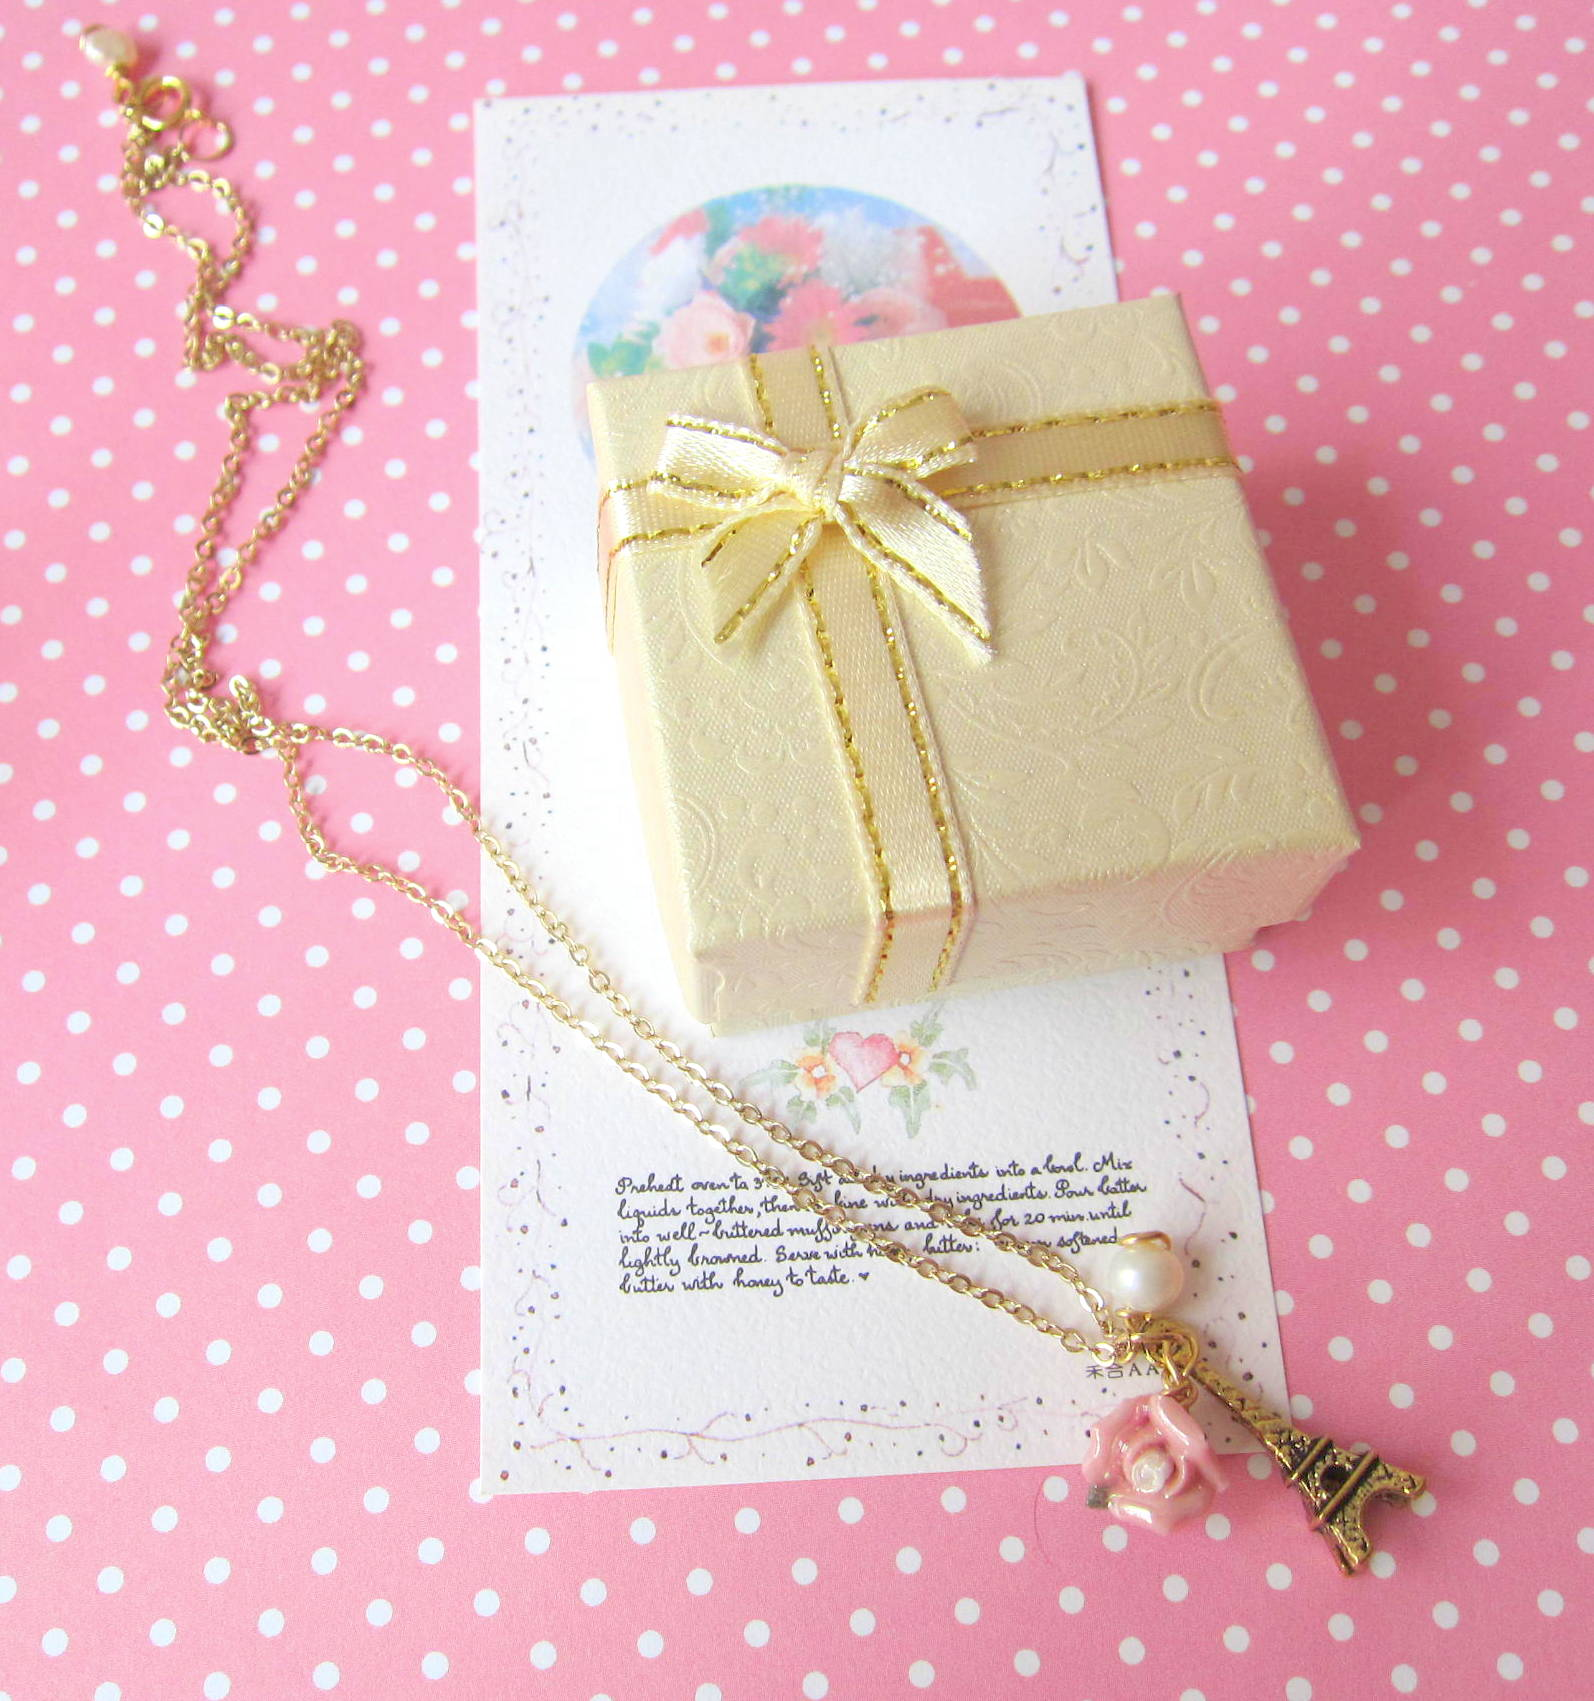 Amour Pour Eiffel Necklace - 14K Gold Plated, Pink Rose, Freshwater ...